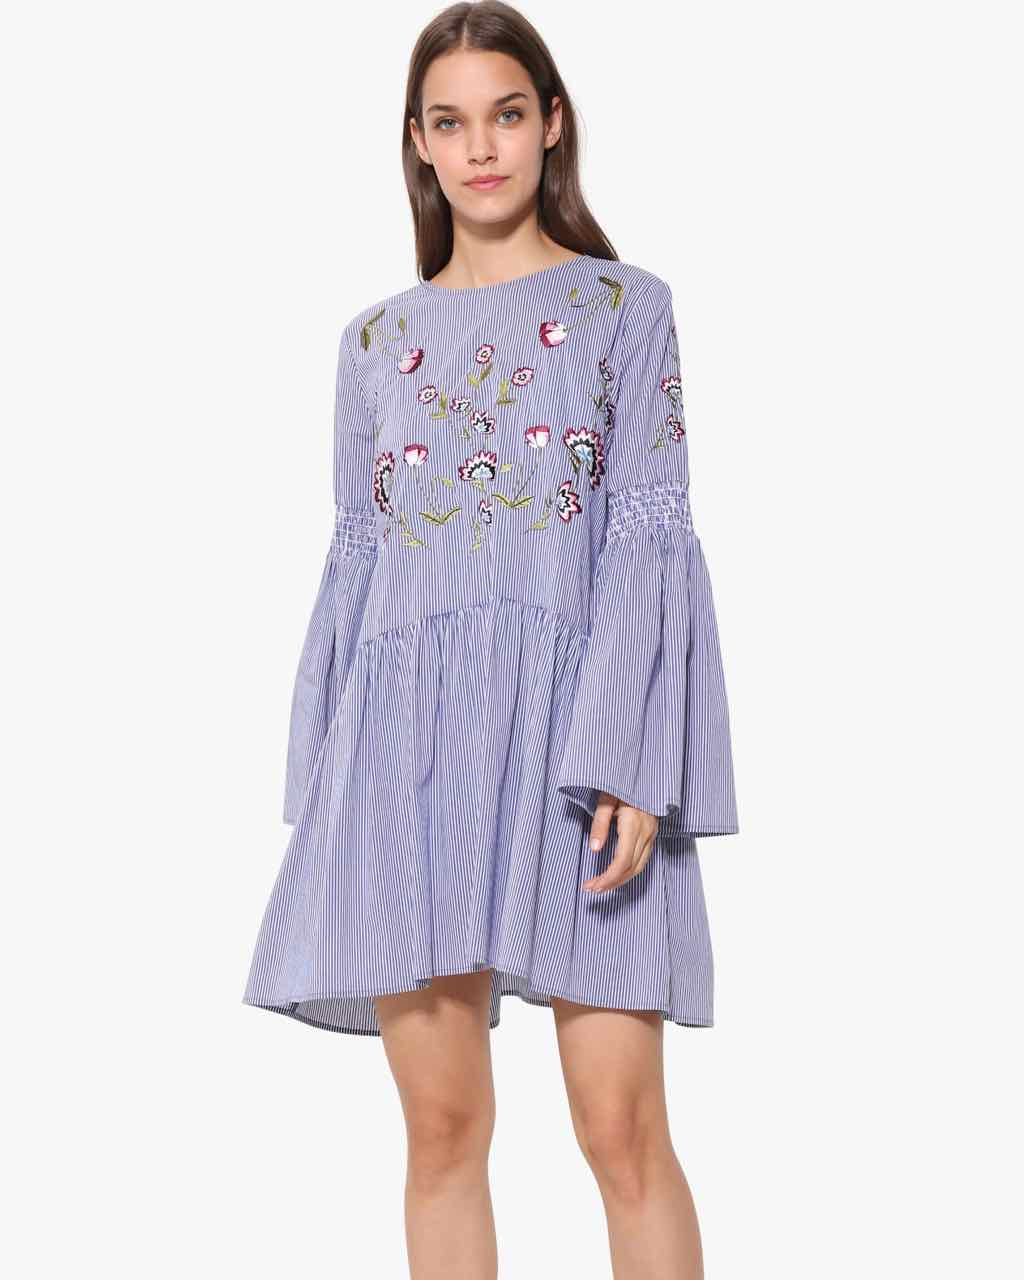 Desigual Flared Dress with Bell Sleeves